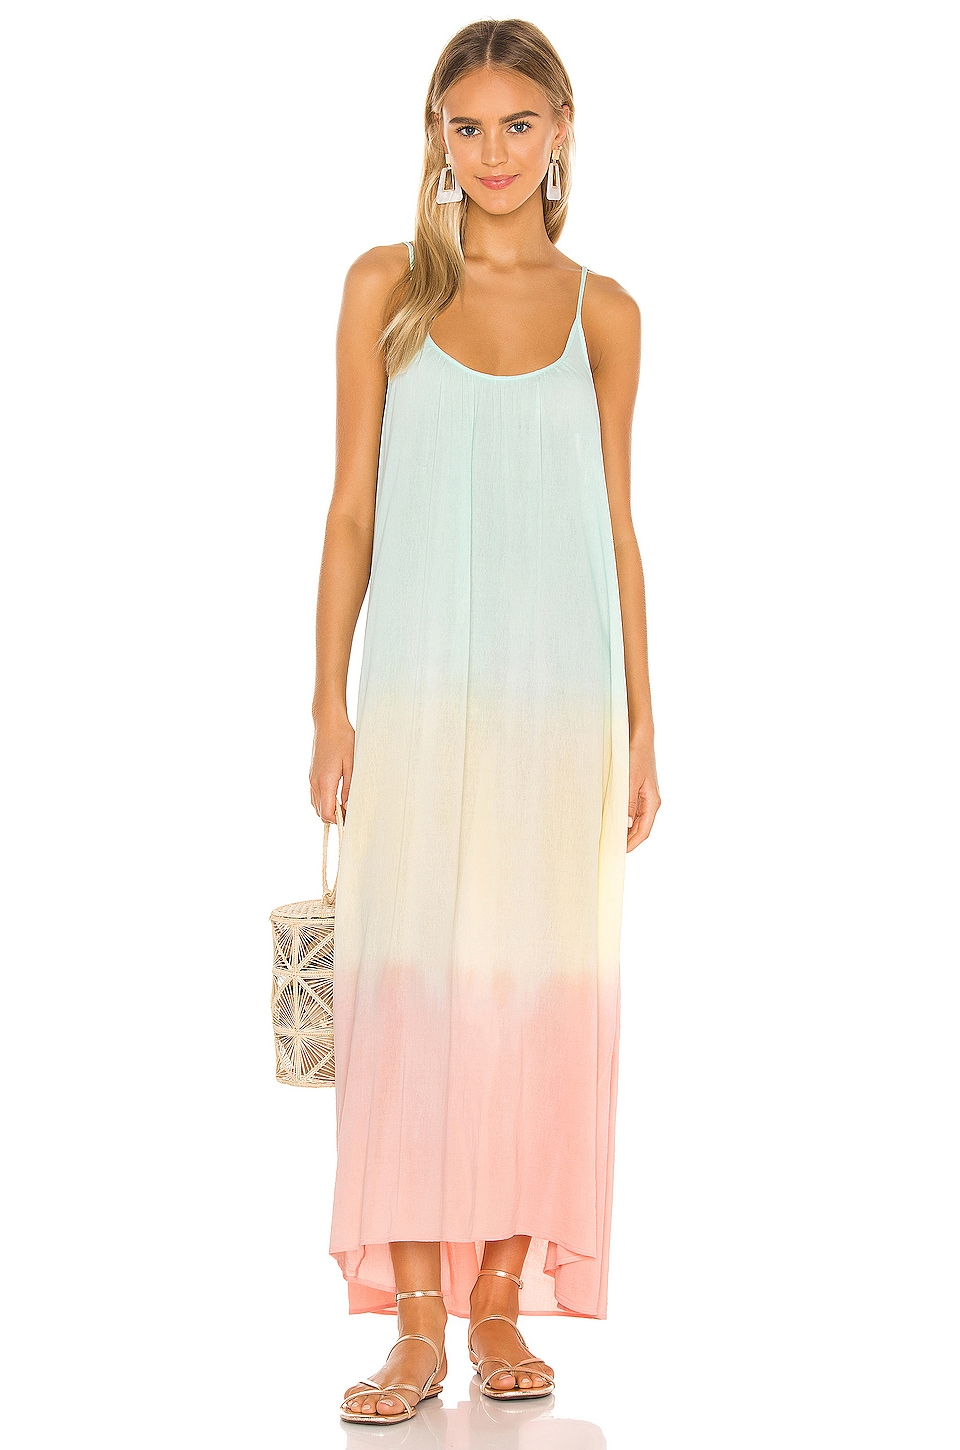 Tulum Core Cotton Maxi Dress             9 Seed                                                                                                       CA$ 351.28 6